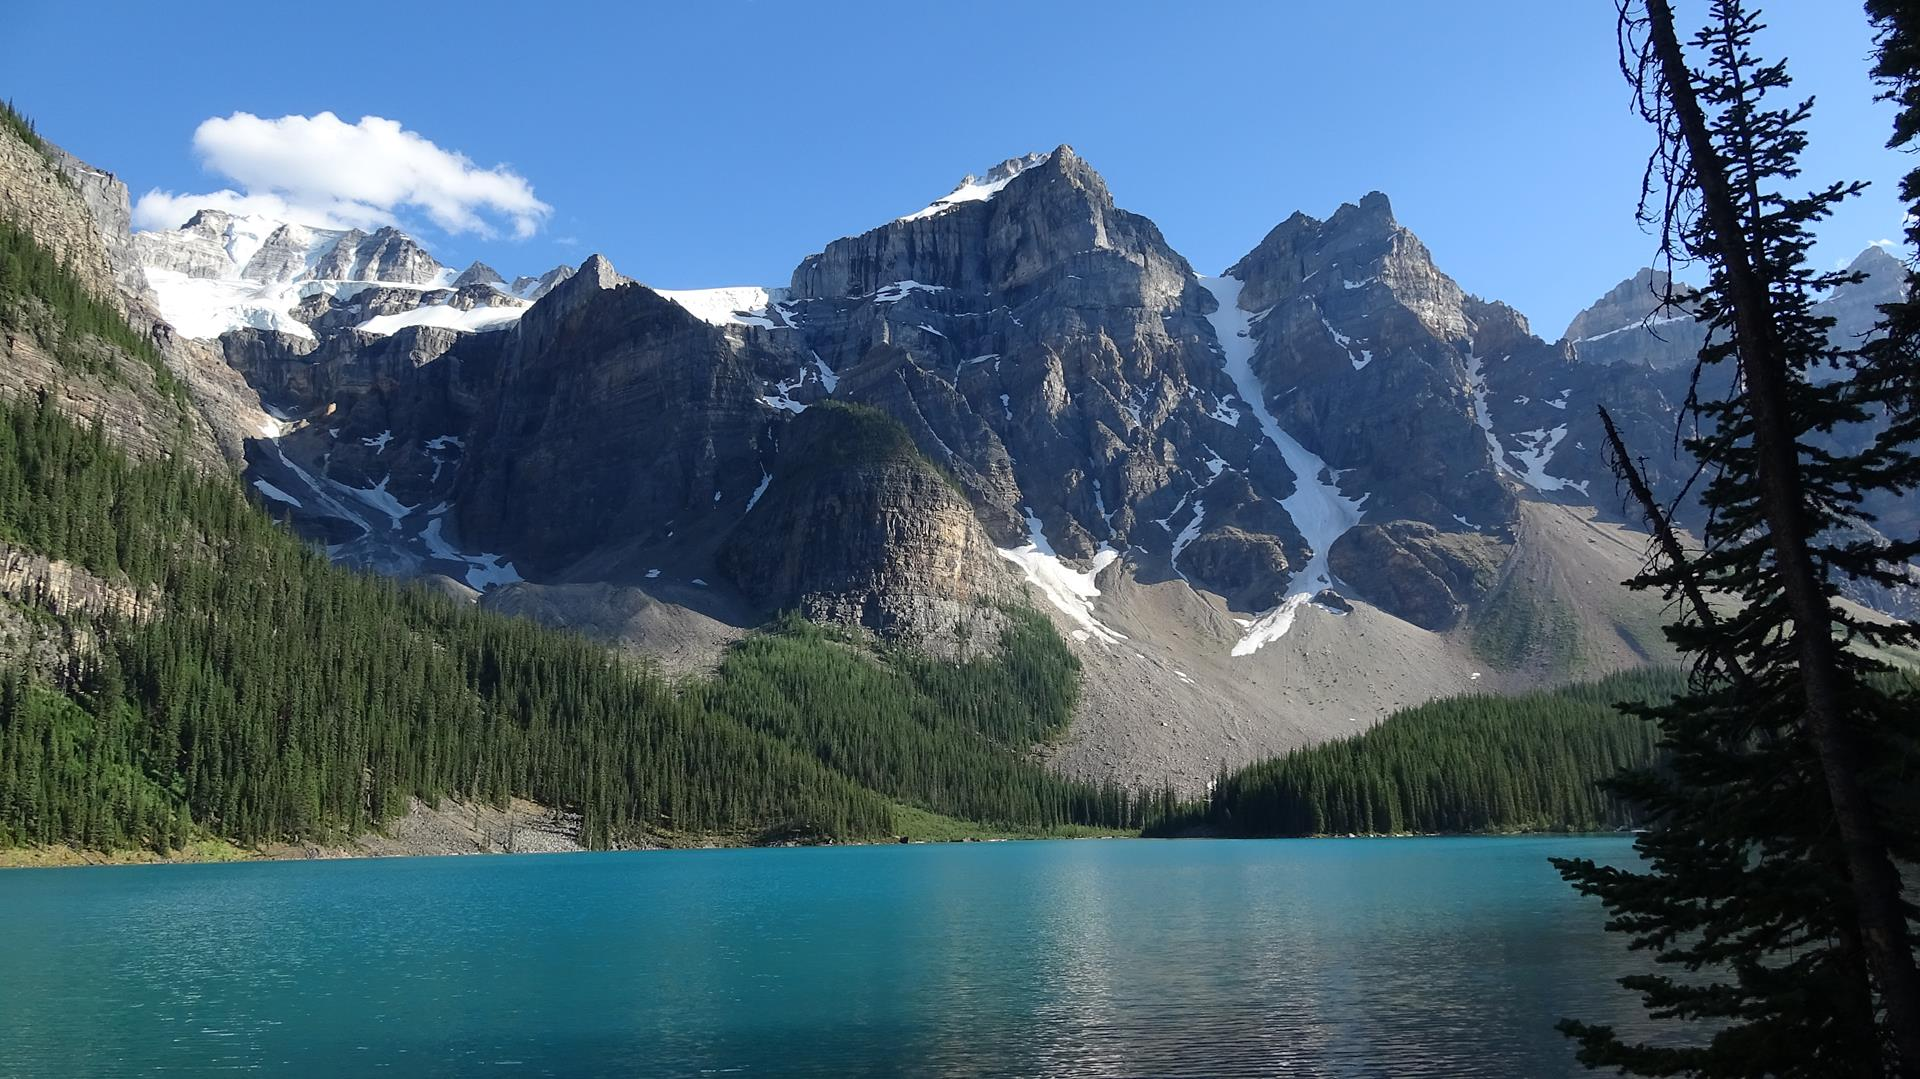 The wild beauty of lake Moraine